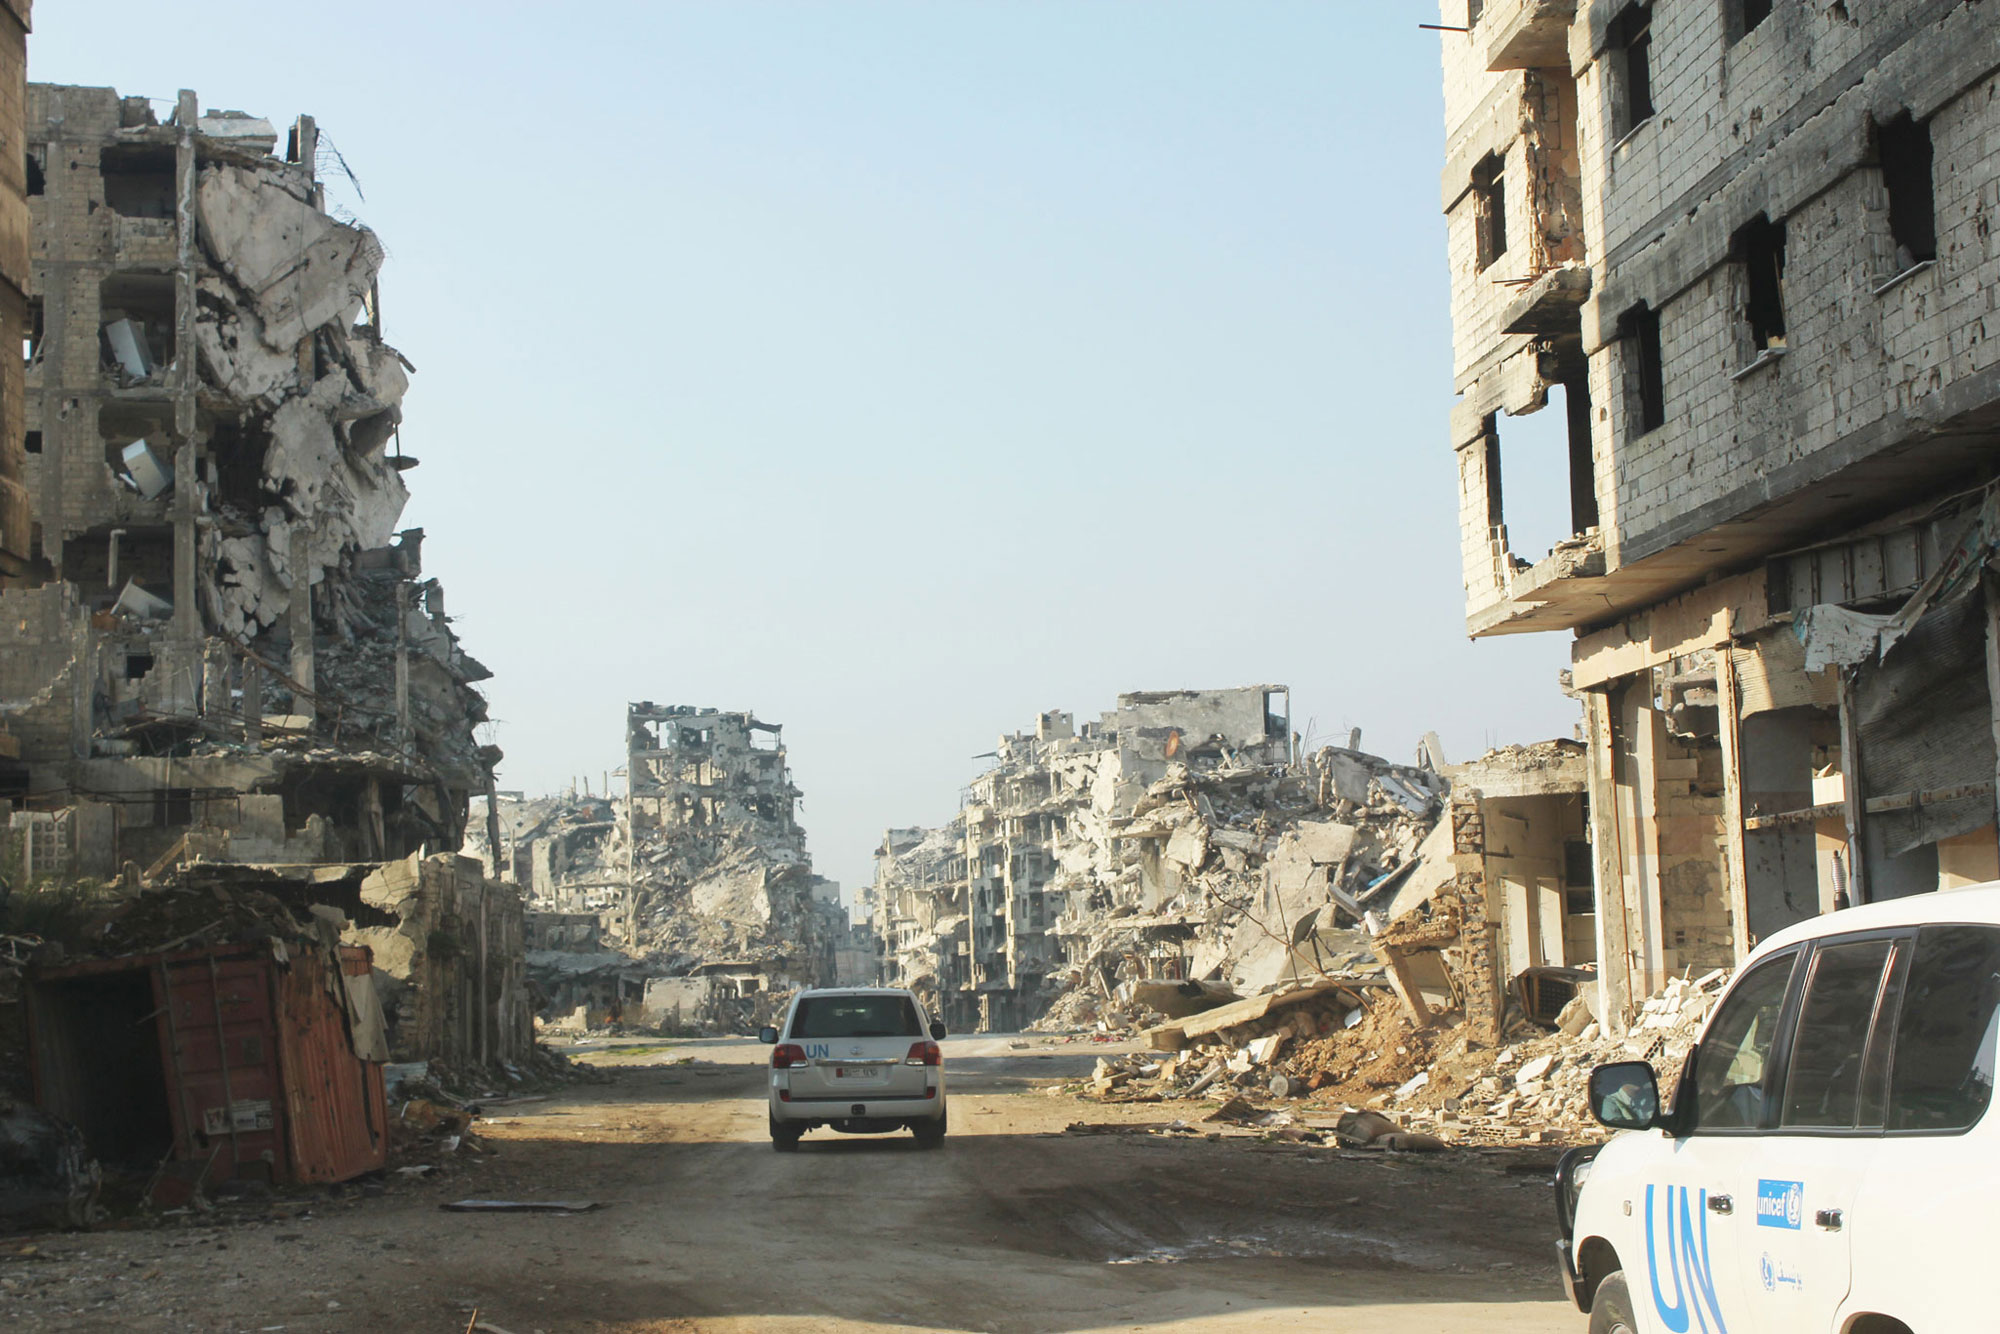 In the Old City of Homs, Syria, UN vehicles travel a dusty road lined with rubble and remnants of destroyed buildings. UNICEF/UNI178367/Tiku